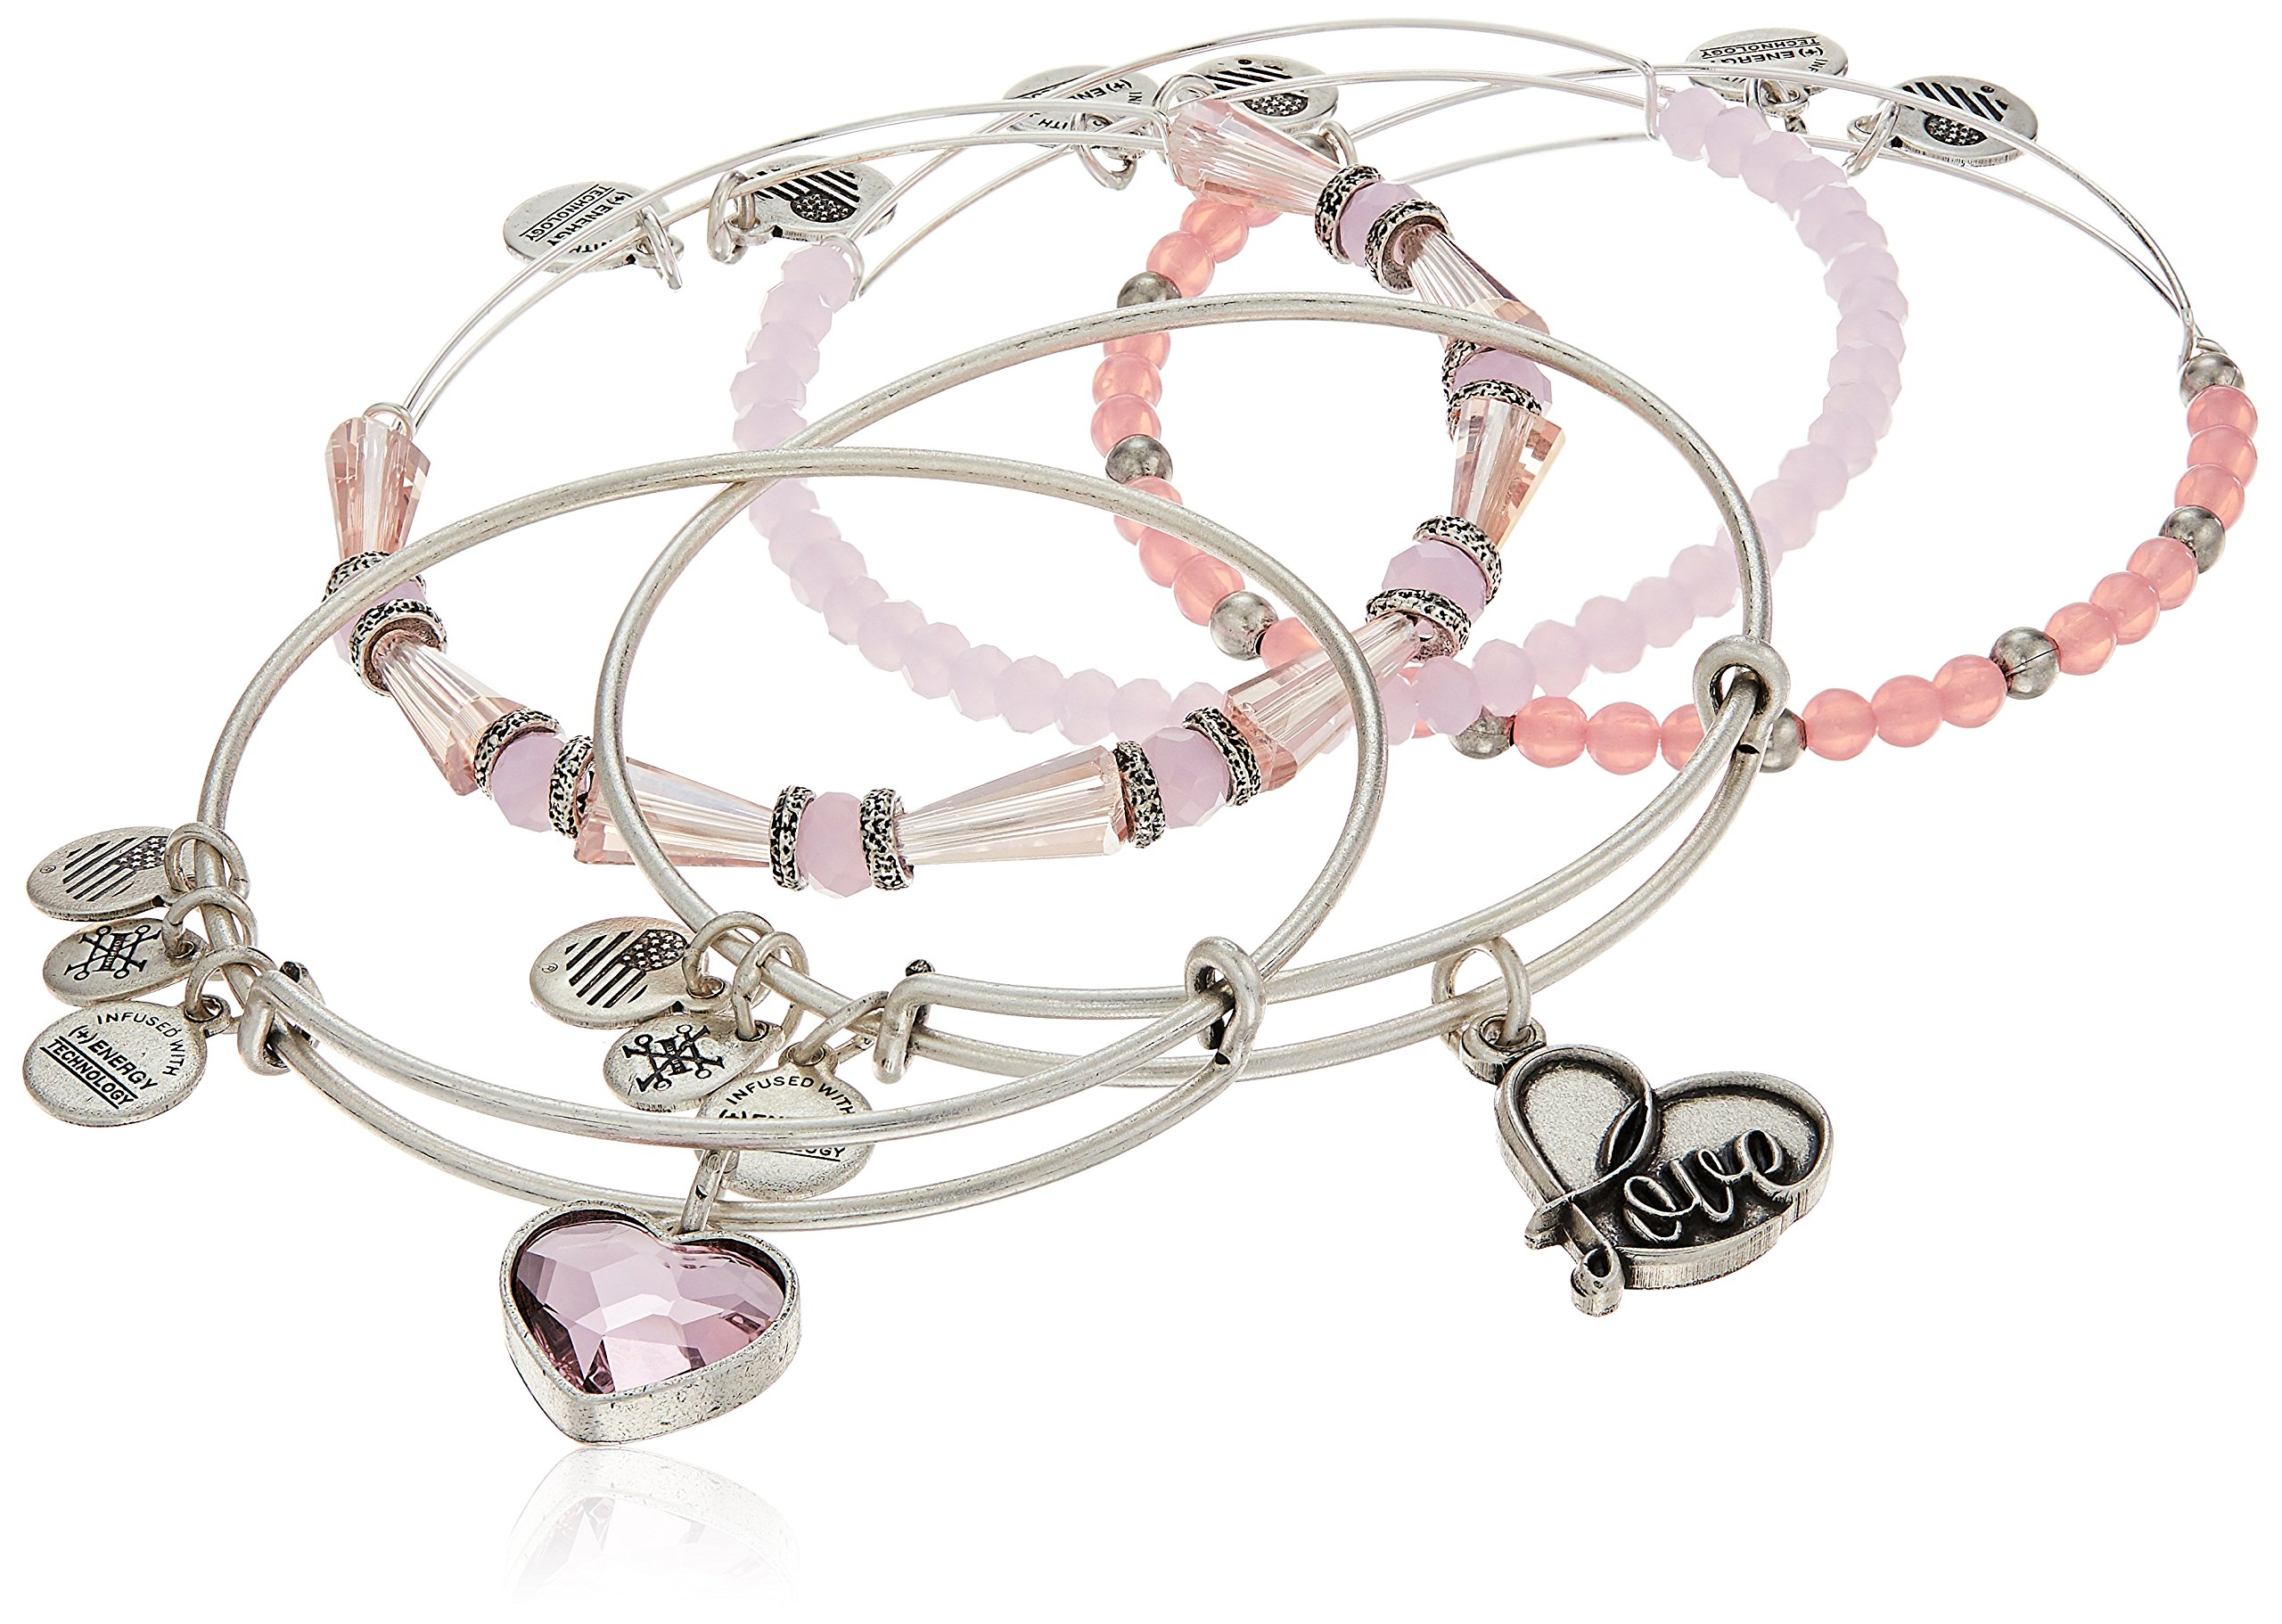 Alex and Ani Alive with Love Pink and Silver Bangle Bracelet